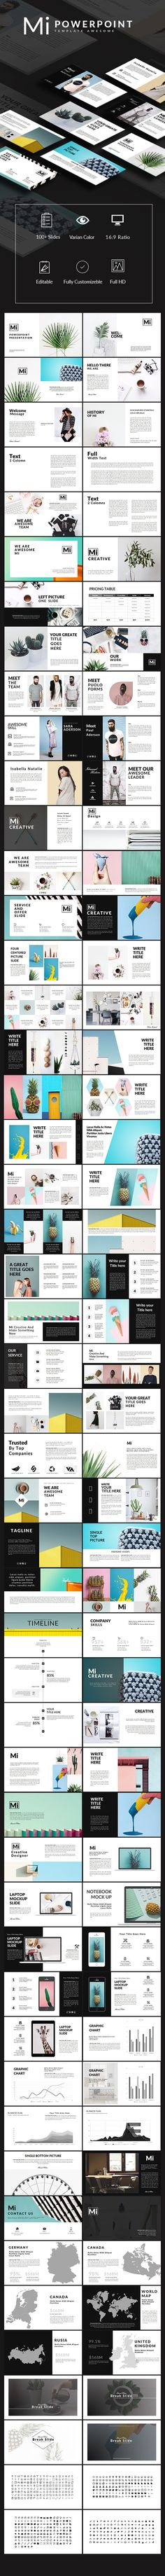 Buy Mi Powerpoint Multipurpose Template by slidercreative on GraphicRiver. MAIN FILE: Images Placeholder Drag And Drop image Theme Colour Option, Easy to change colors, Fully editable text, ph. Powerpoint Design Templates, Powerpoint Themes, Graphic Design Templates, Creative Powerpoint, Keynote Template, Graphisches Design, Layout Design, Cv Inspiration, Presentation Layout